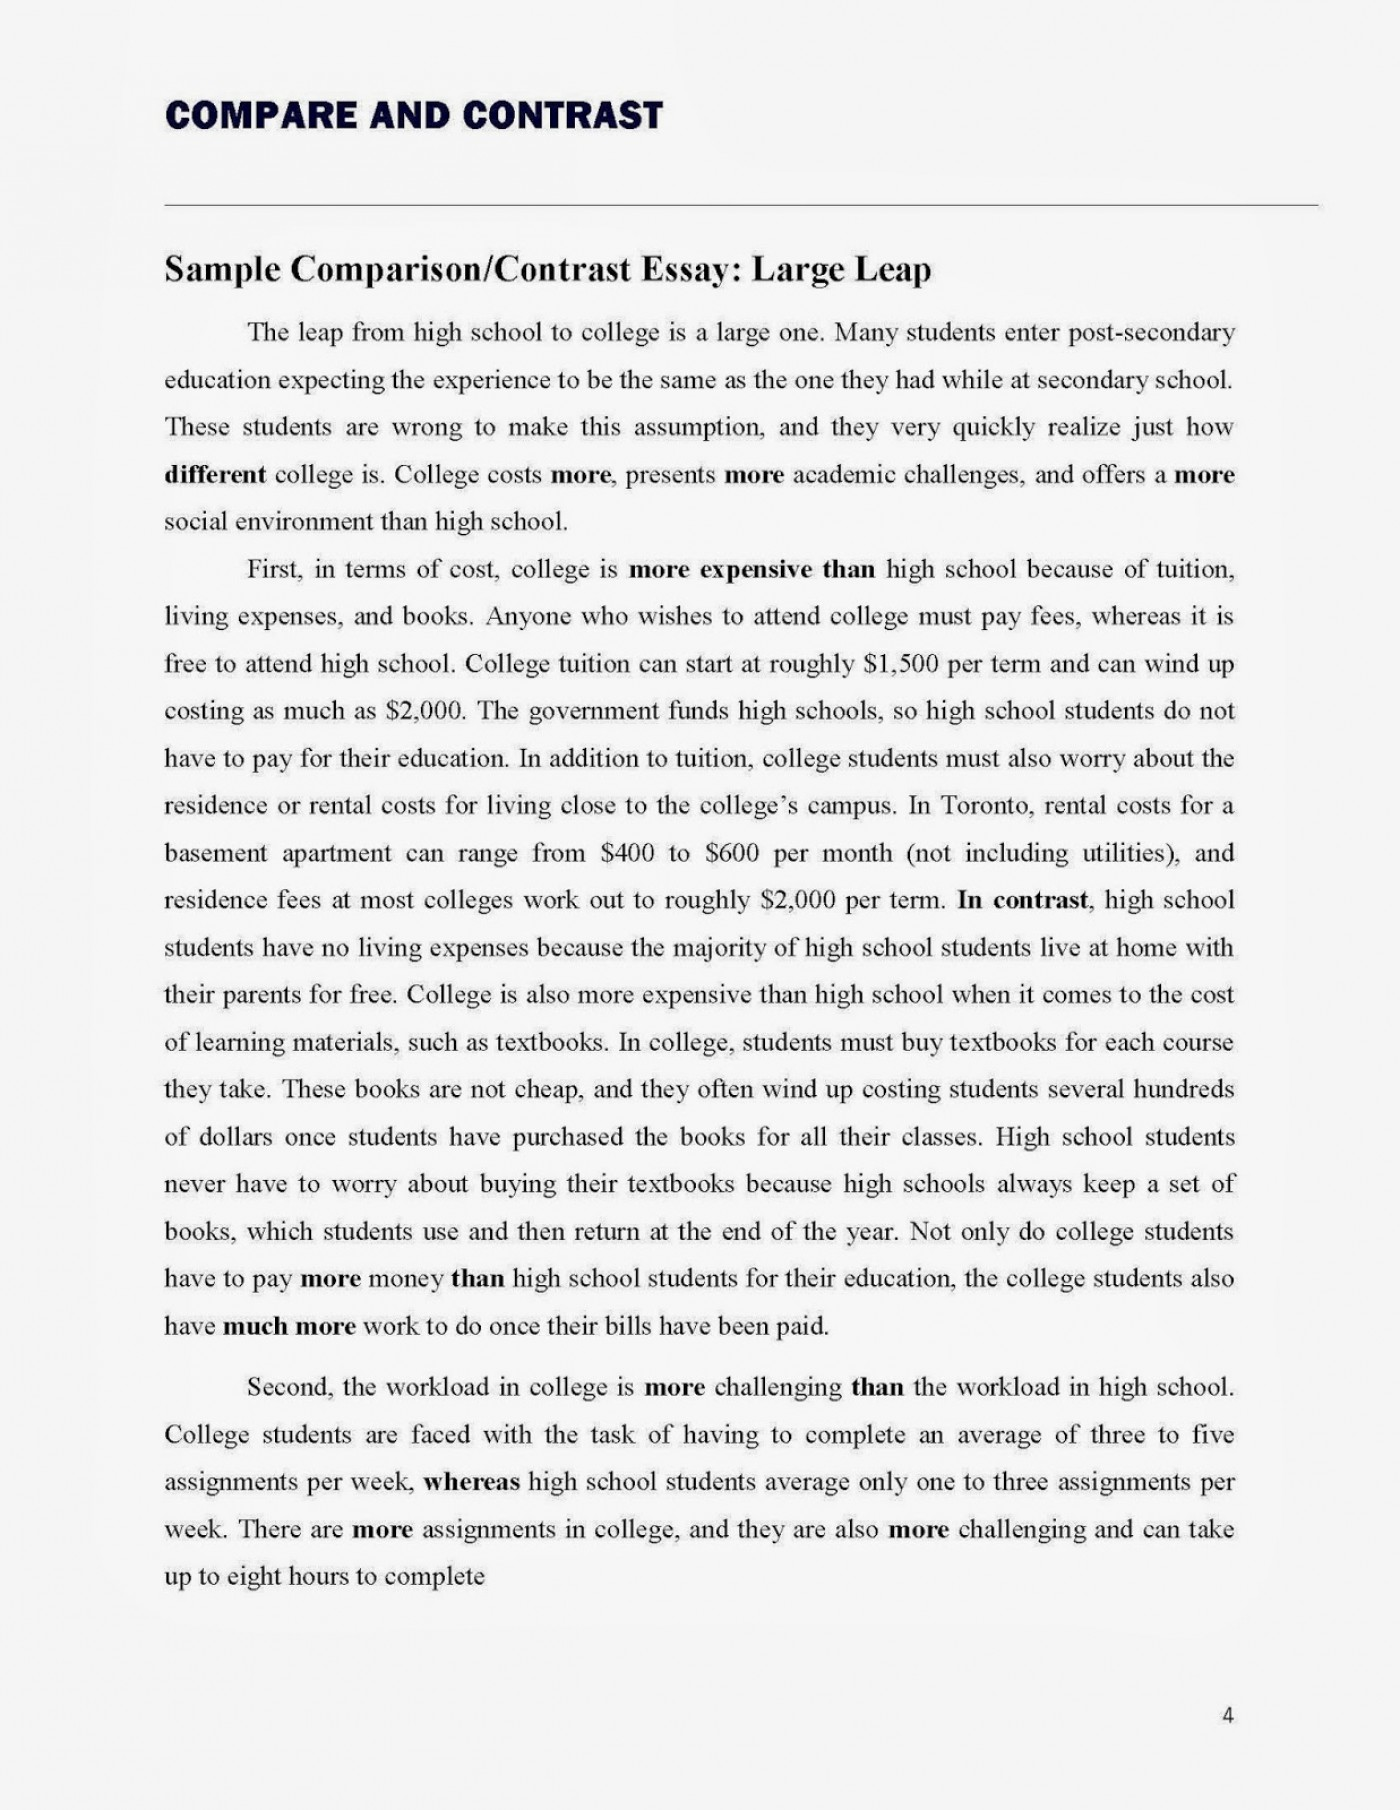 011 Compare And Contrast Essay Compareandcontrastessay Page 4h125 Frightening Sample 4th Grade Introduction Paragraph Ideas 1400